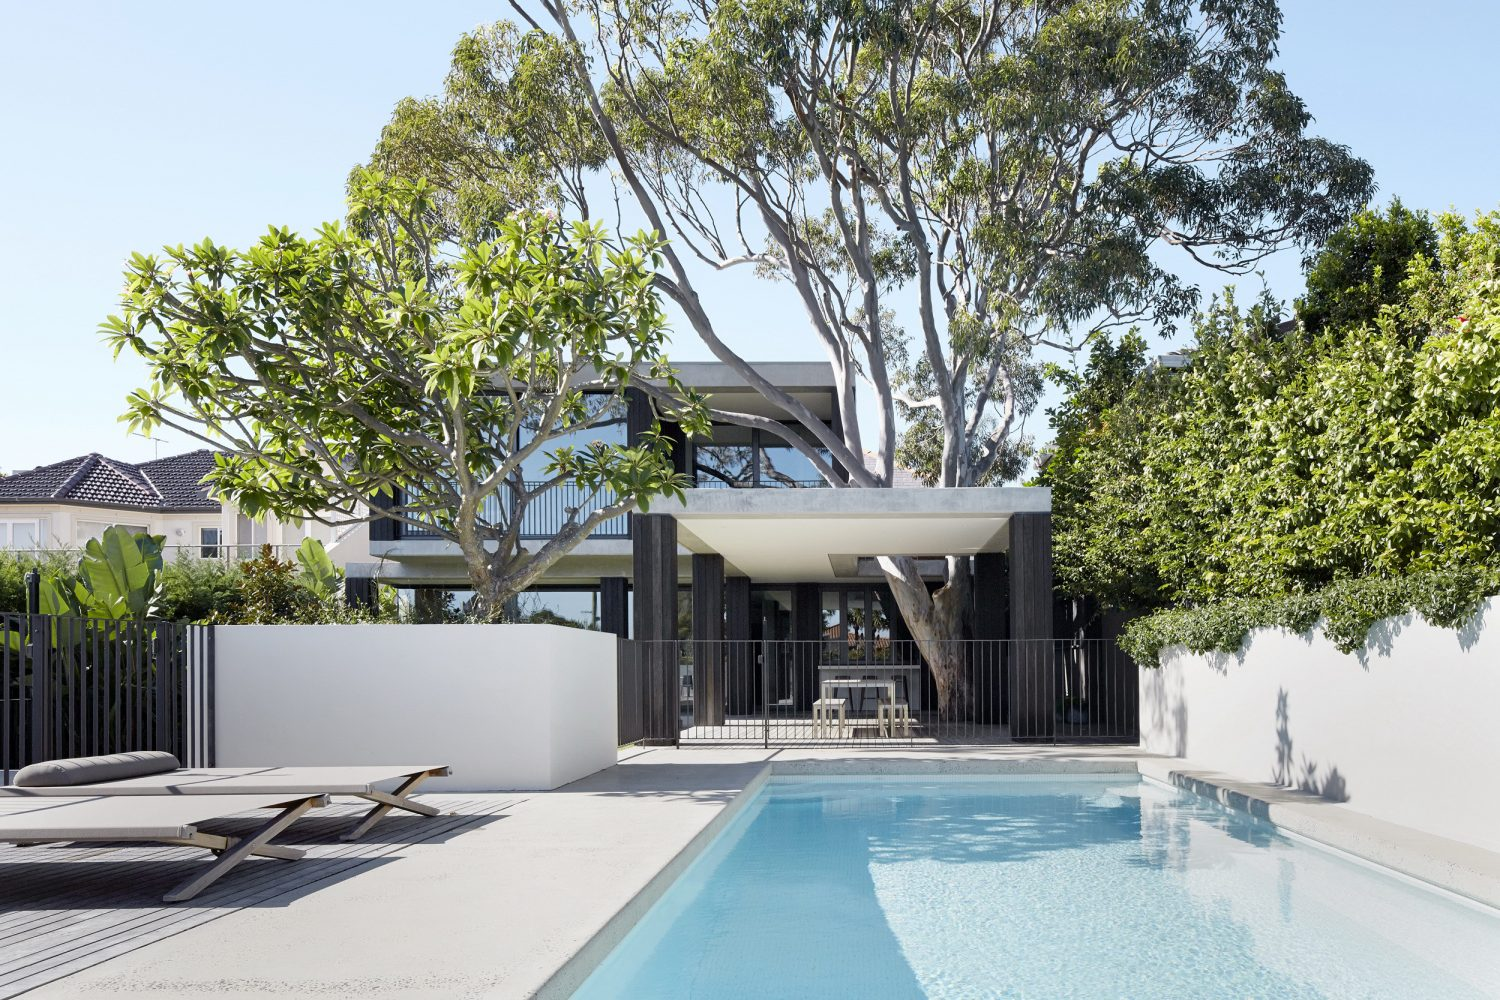 Hopetoun Avenue Residence by B.E Architecture